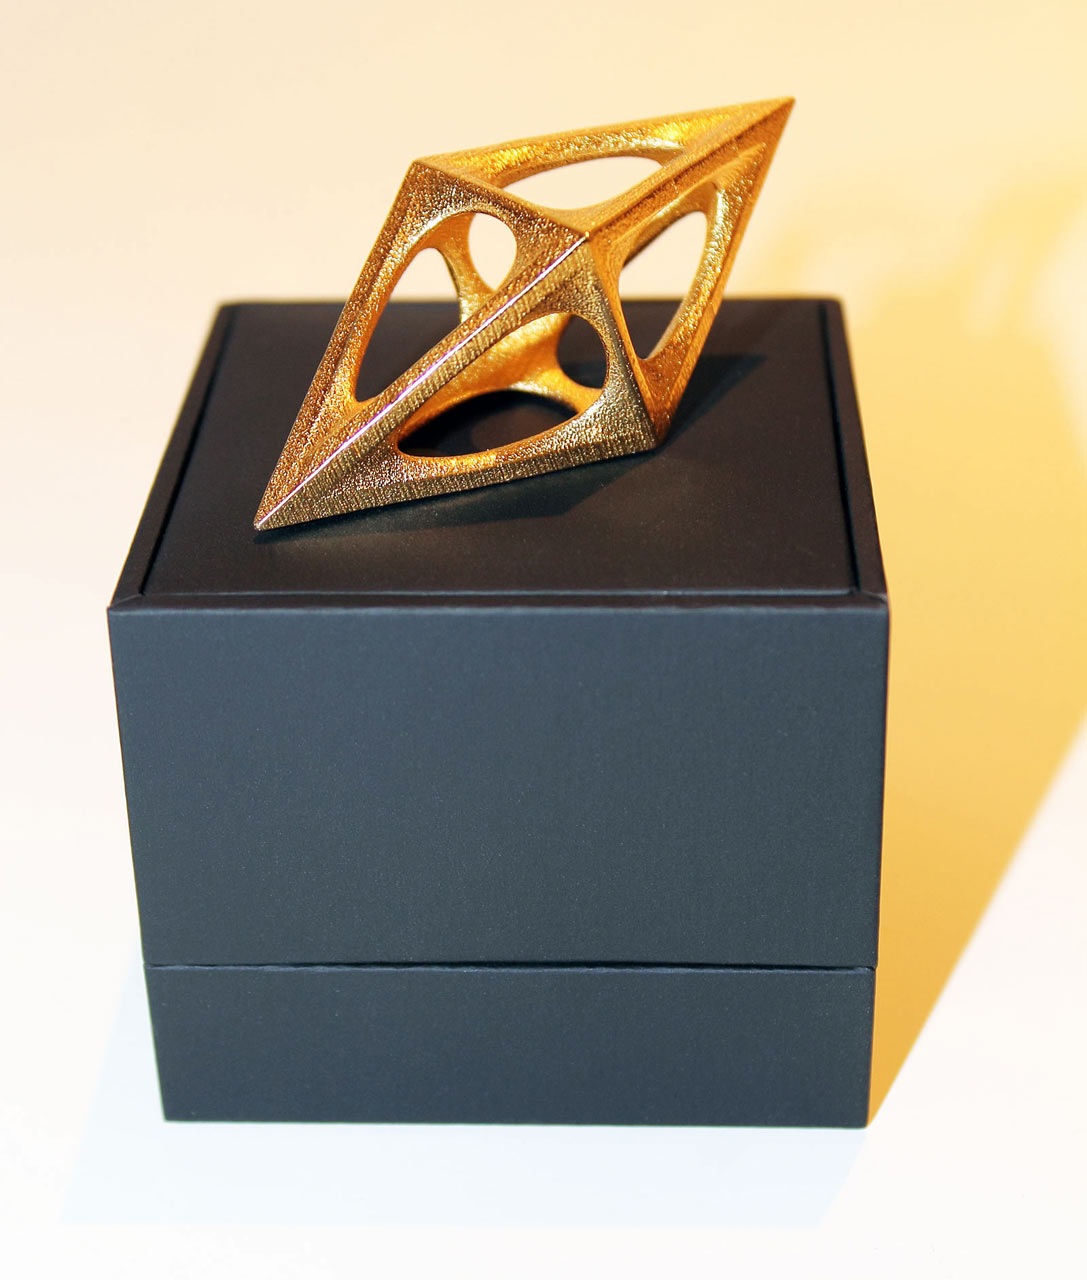 A-Design-Award-and-Competition-trophy